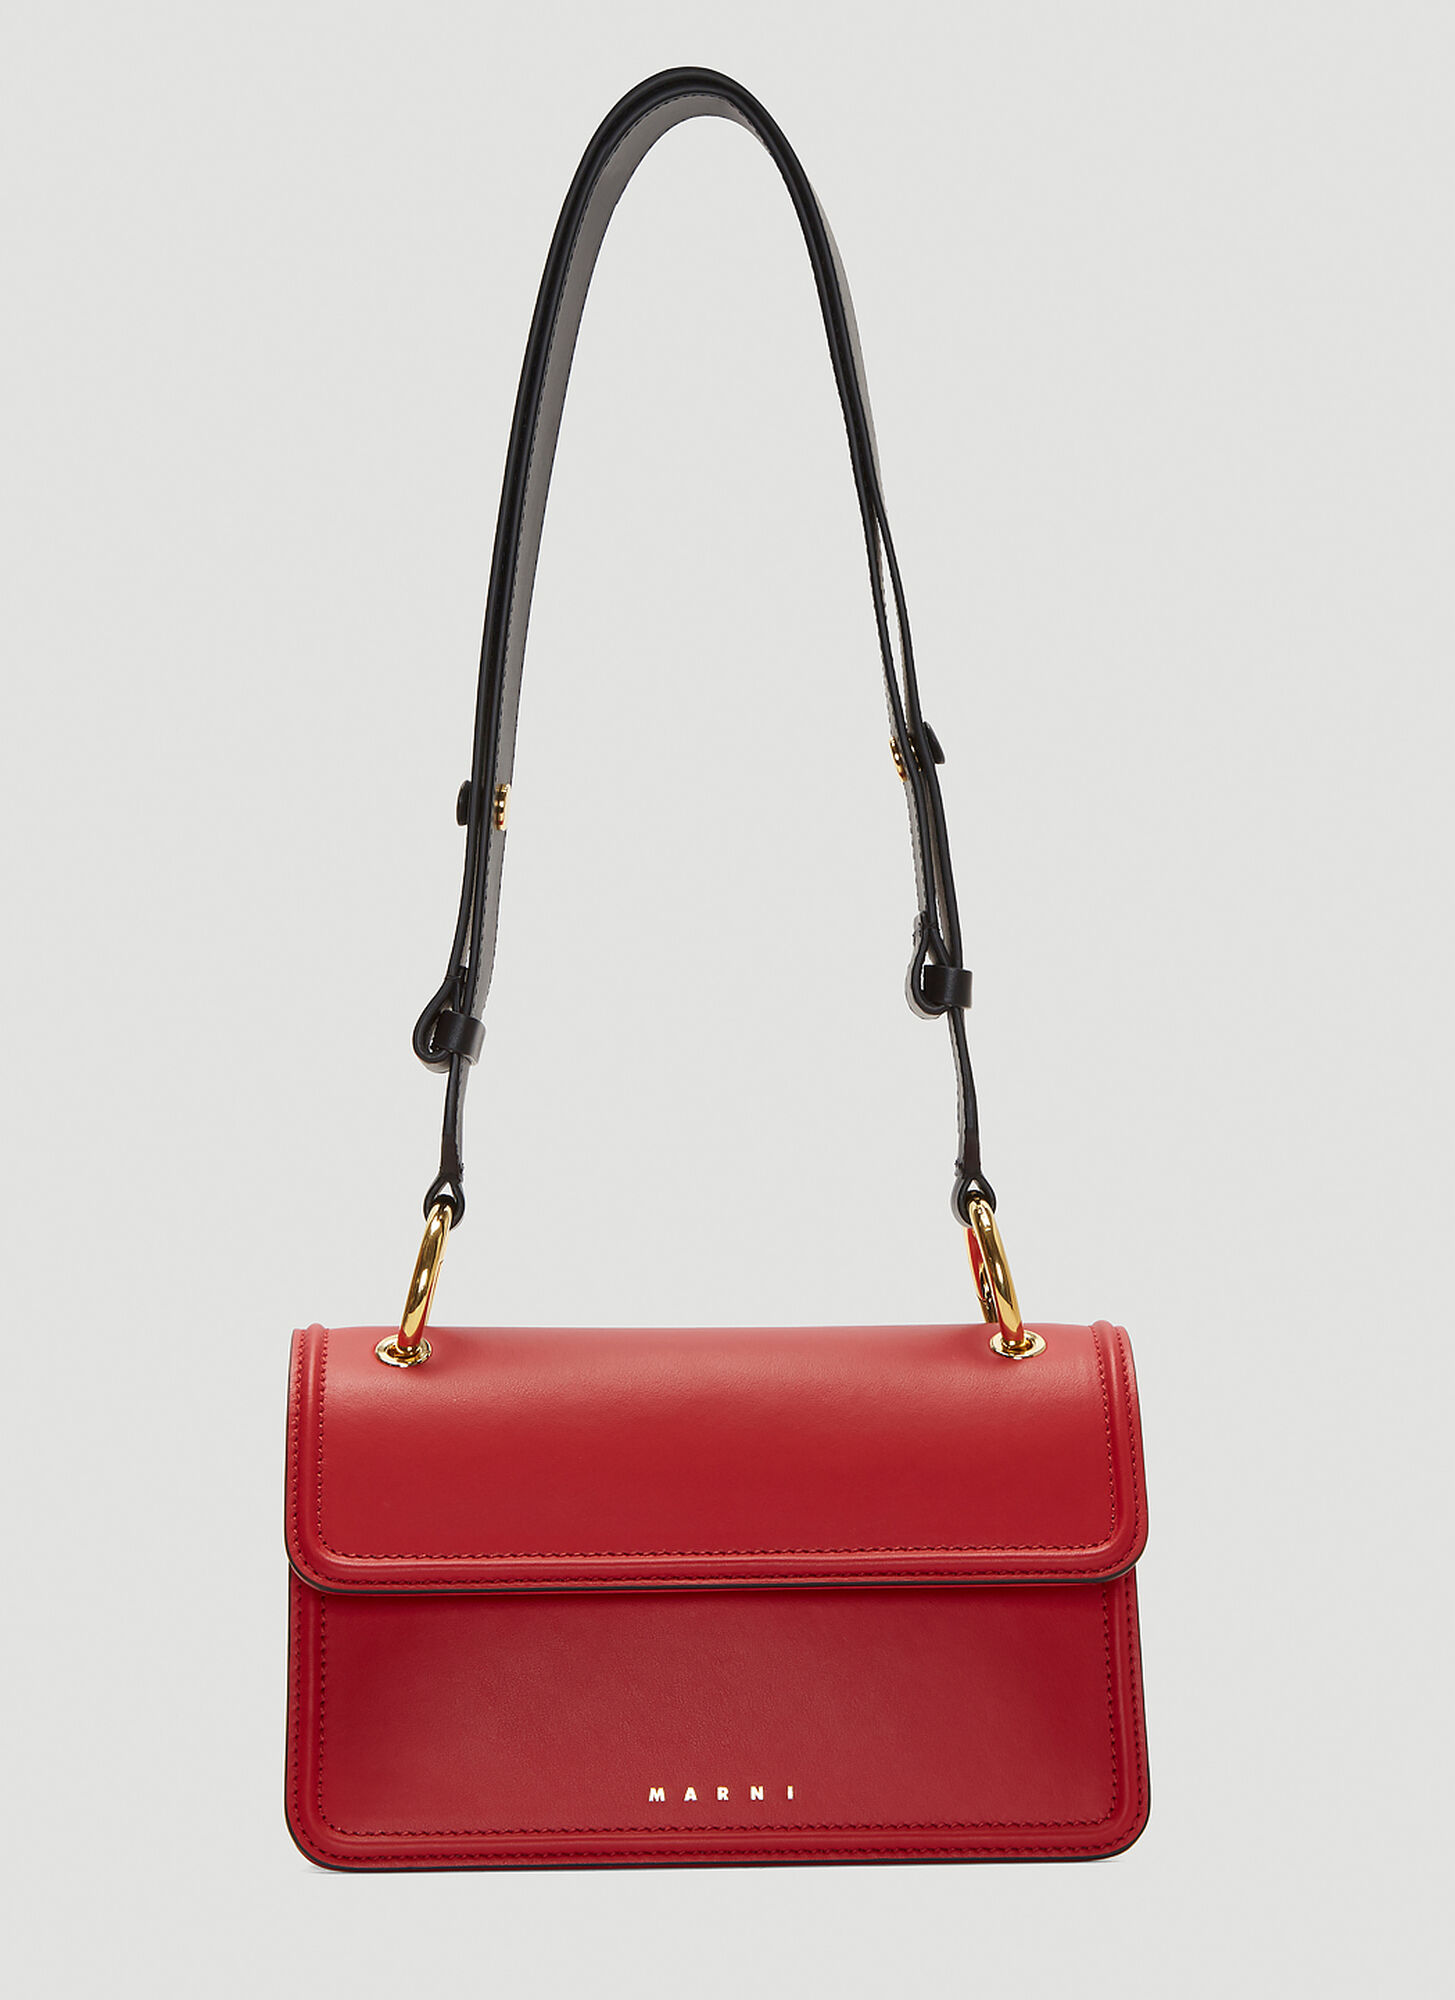 Marni Beat Bag in Red